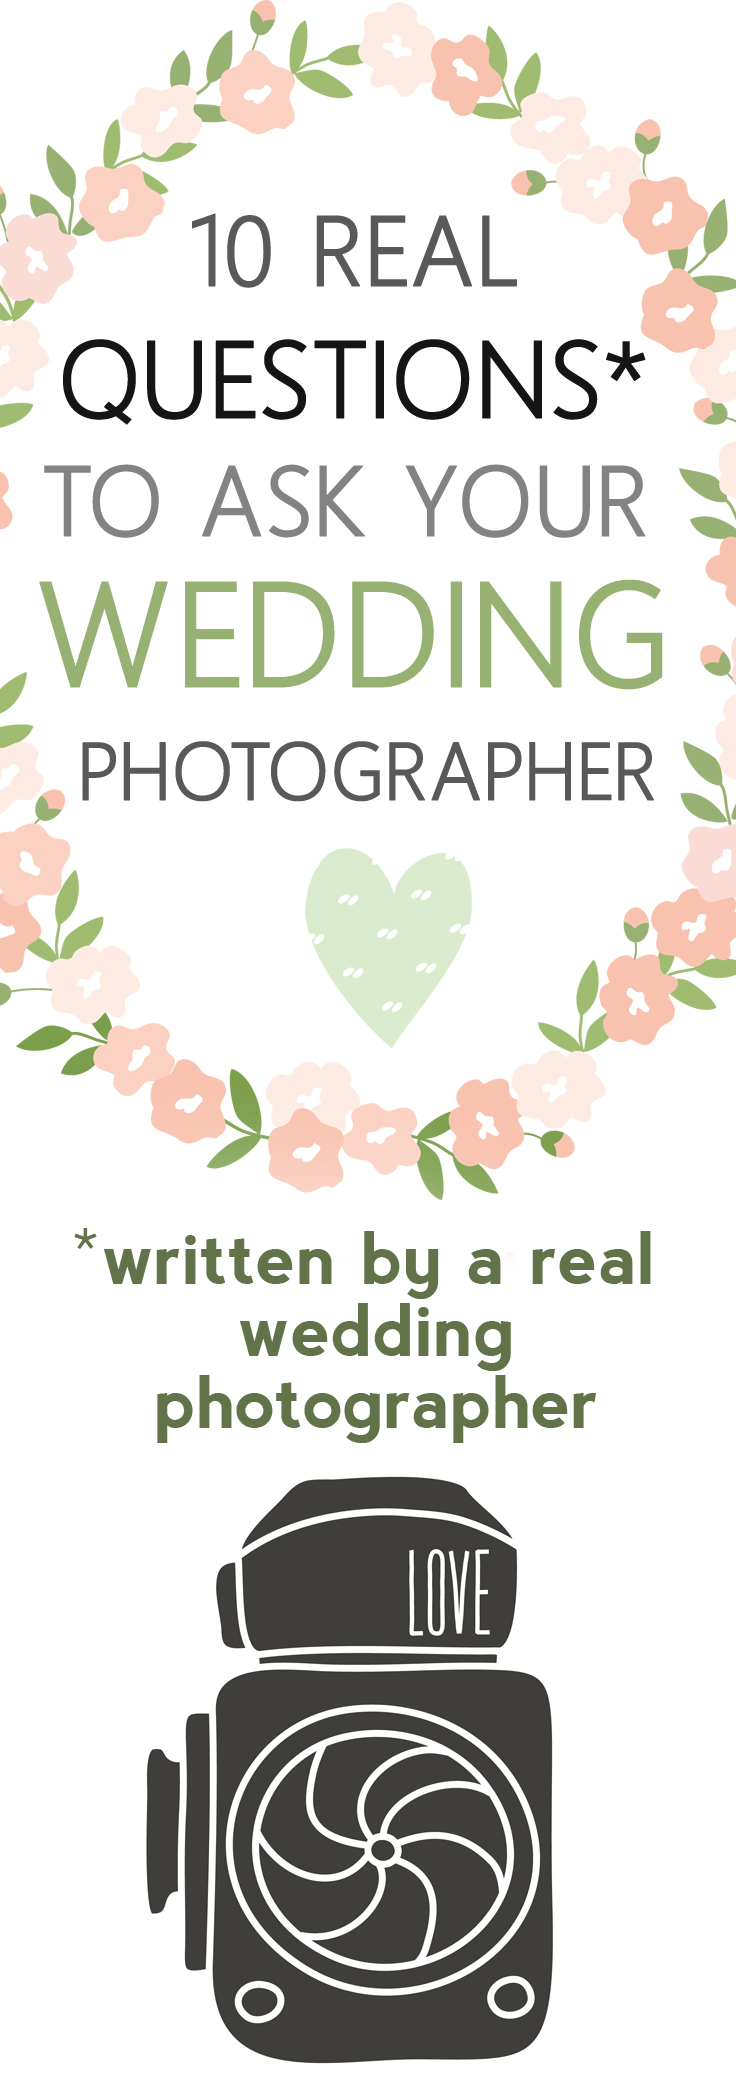 wedding photographer, 10 real questions to ask for wedding